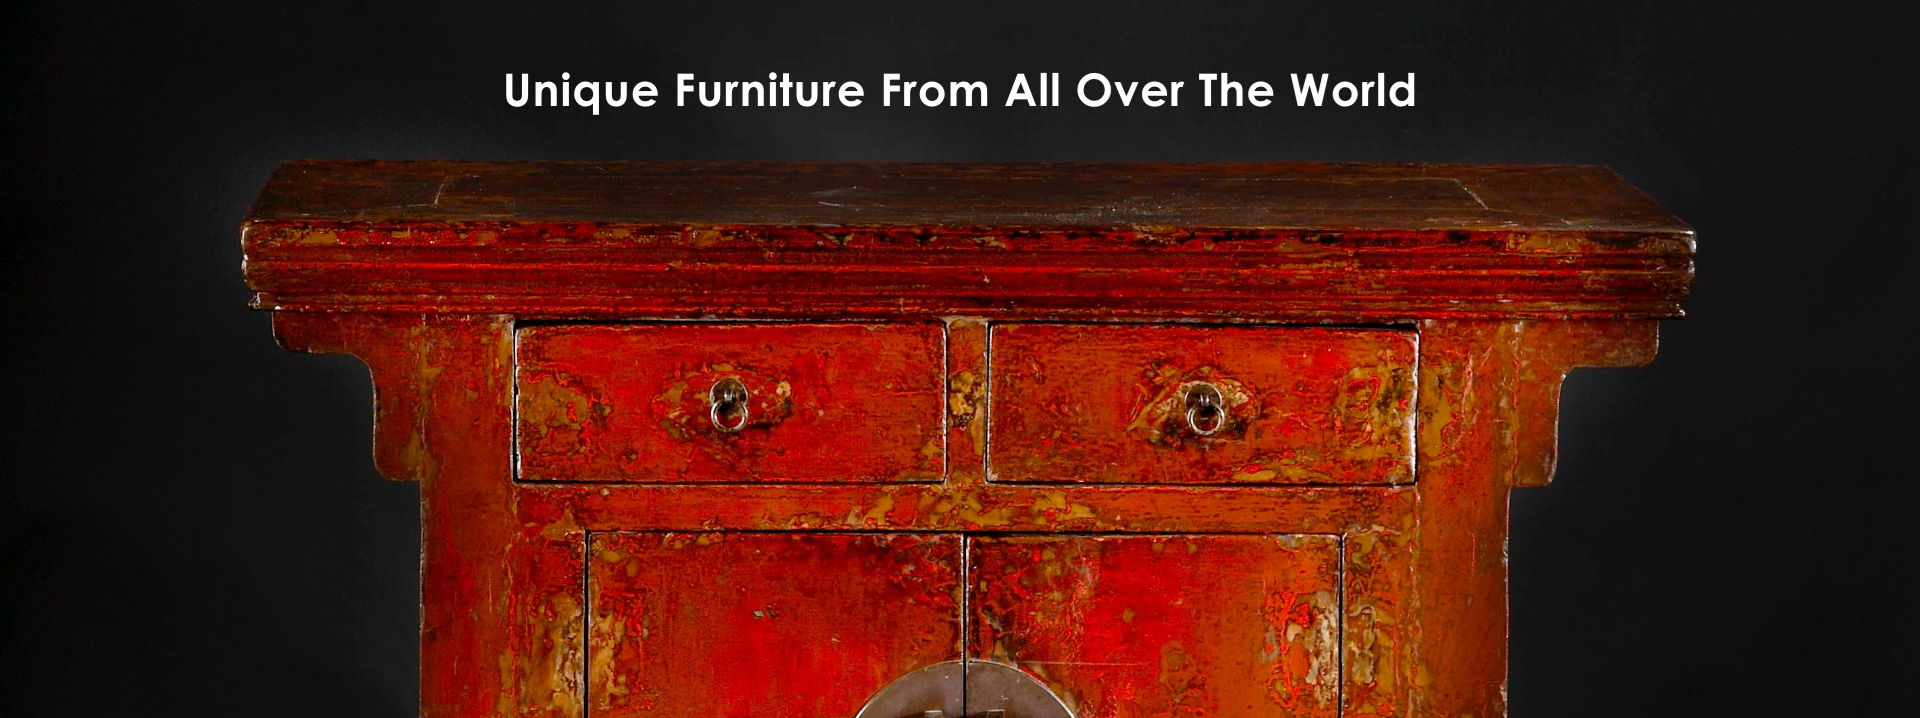 Unique Furniture From Around The World